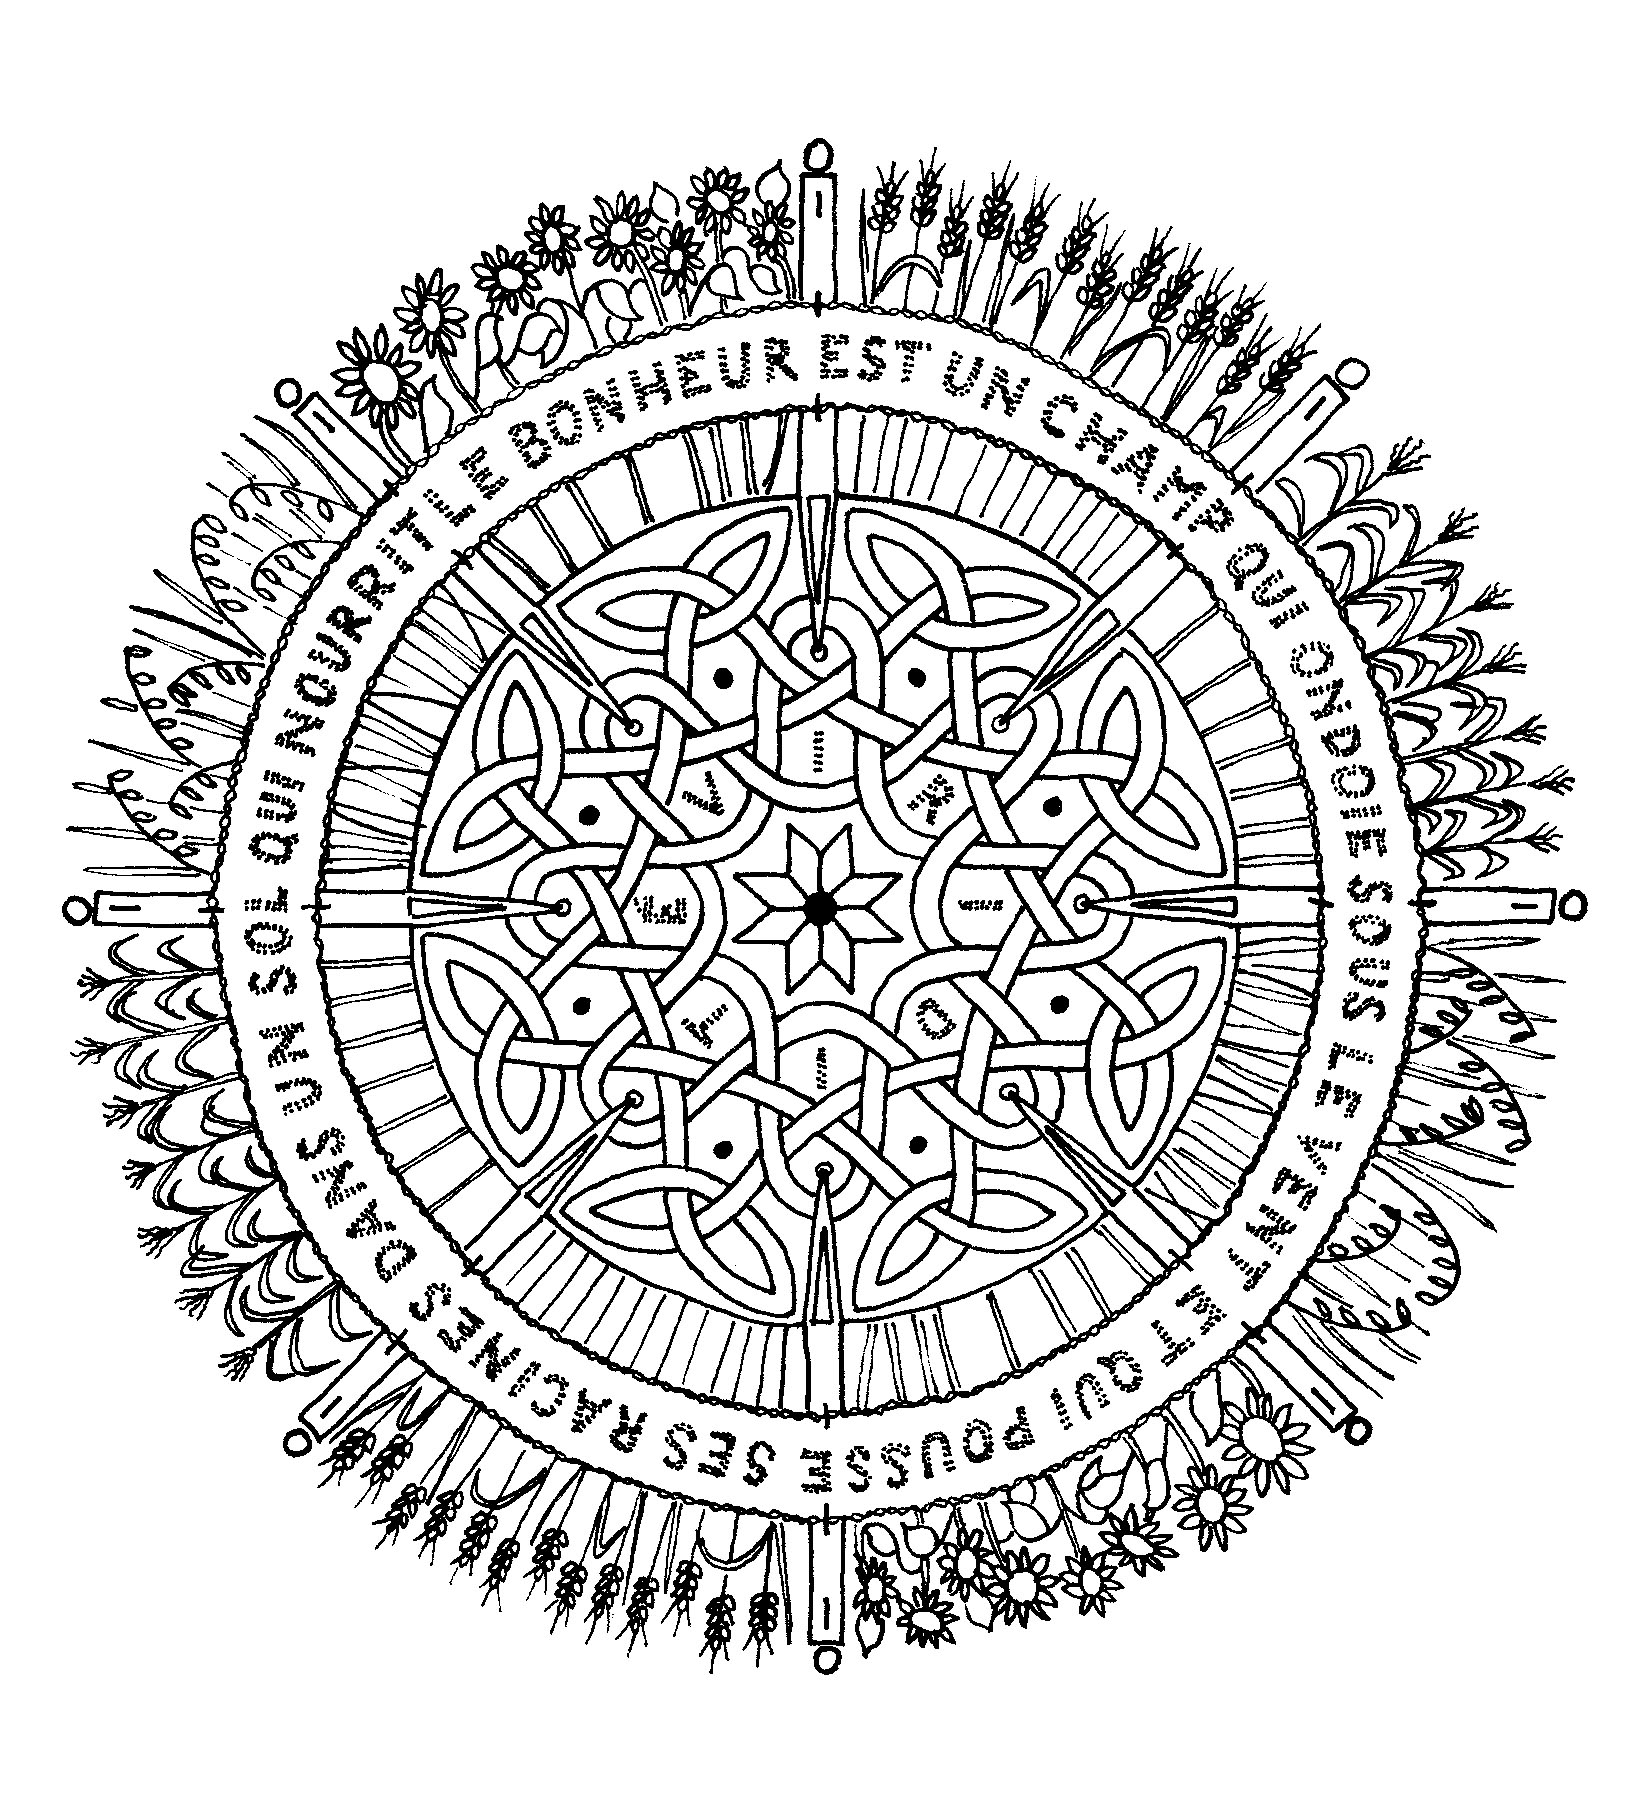 Coloriage Adulte Citation.Mandala A Colorier Difficile 14 Mandalas Difficiles Pour Adultes